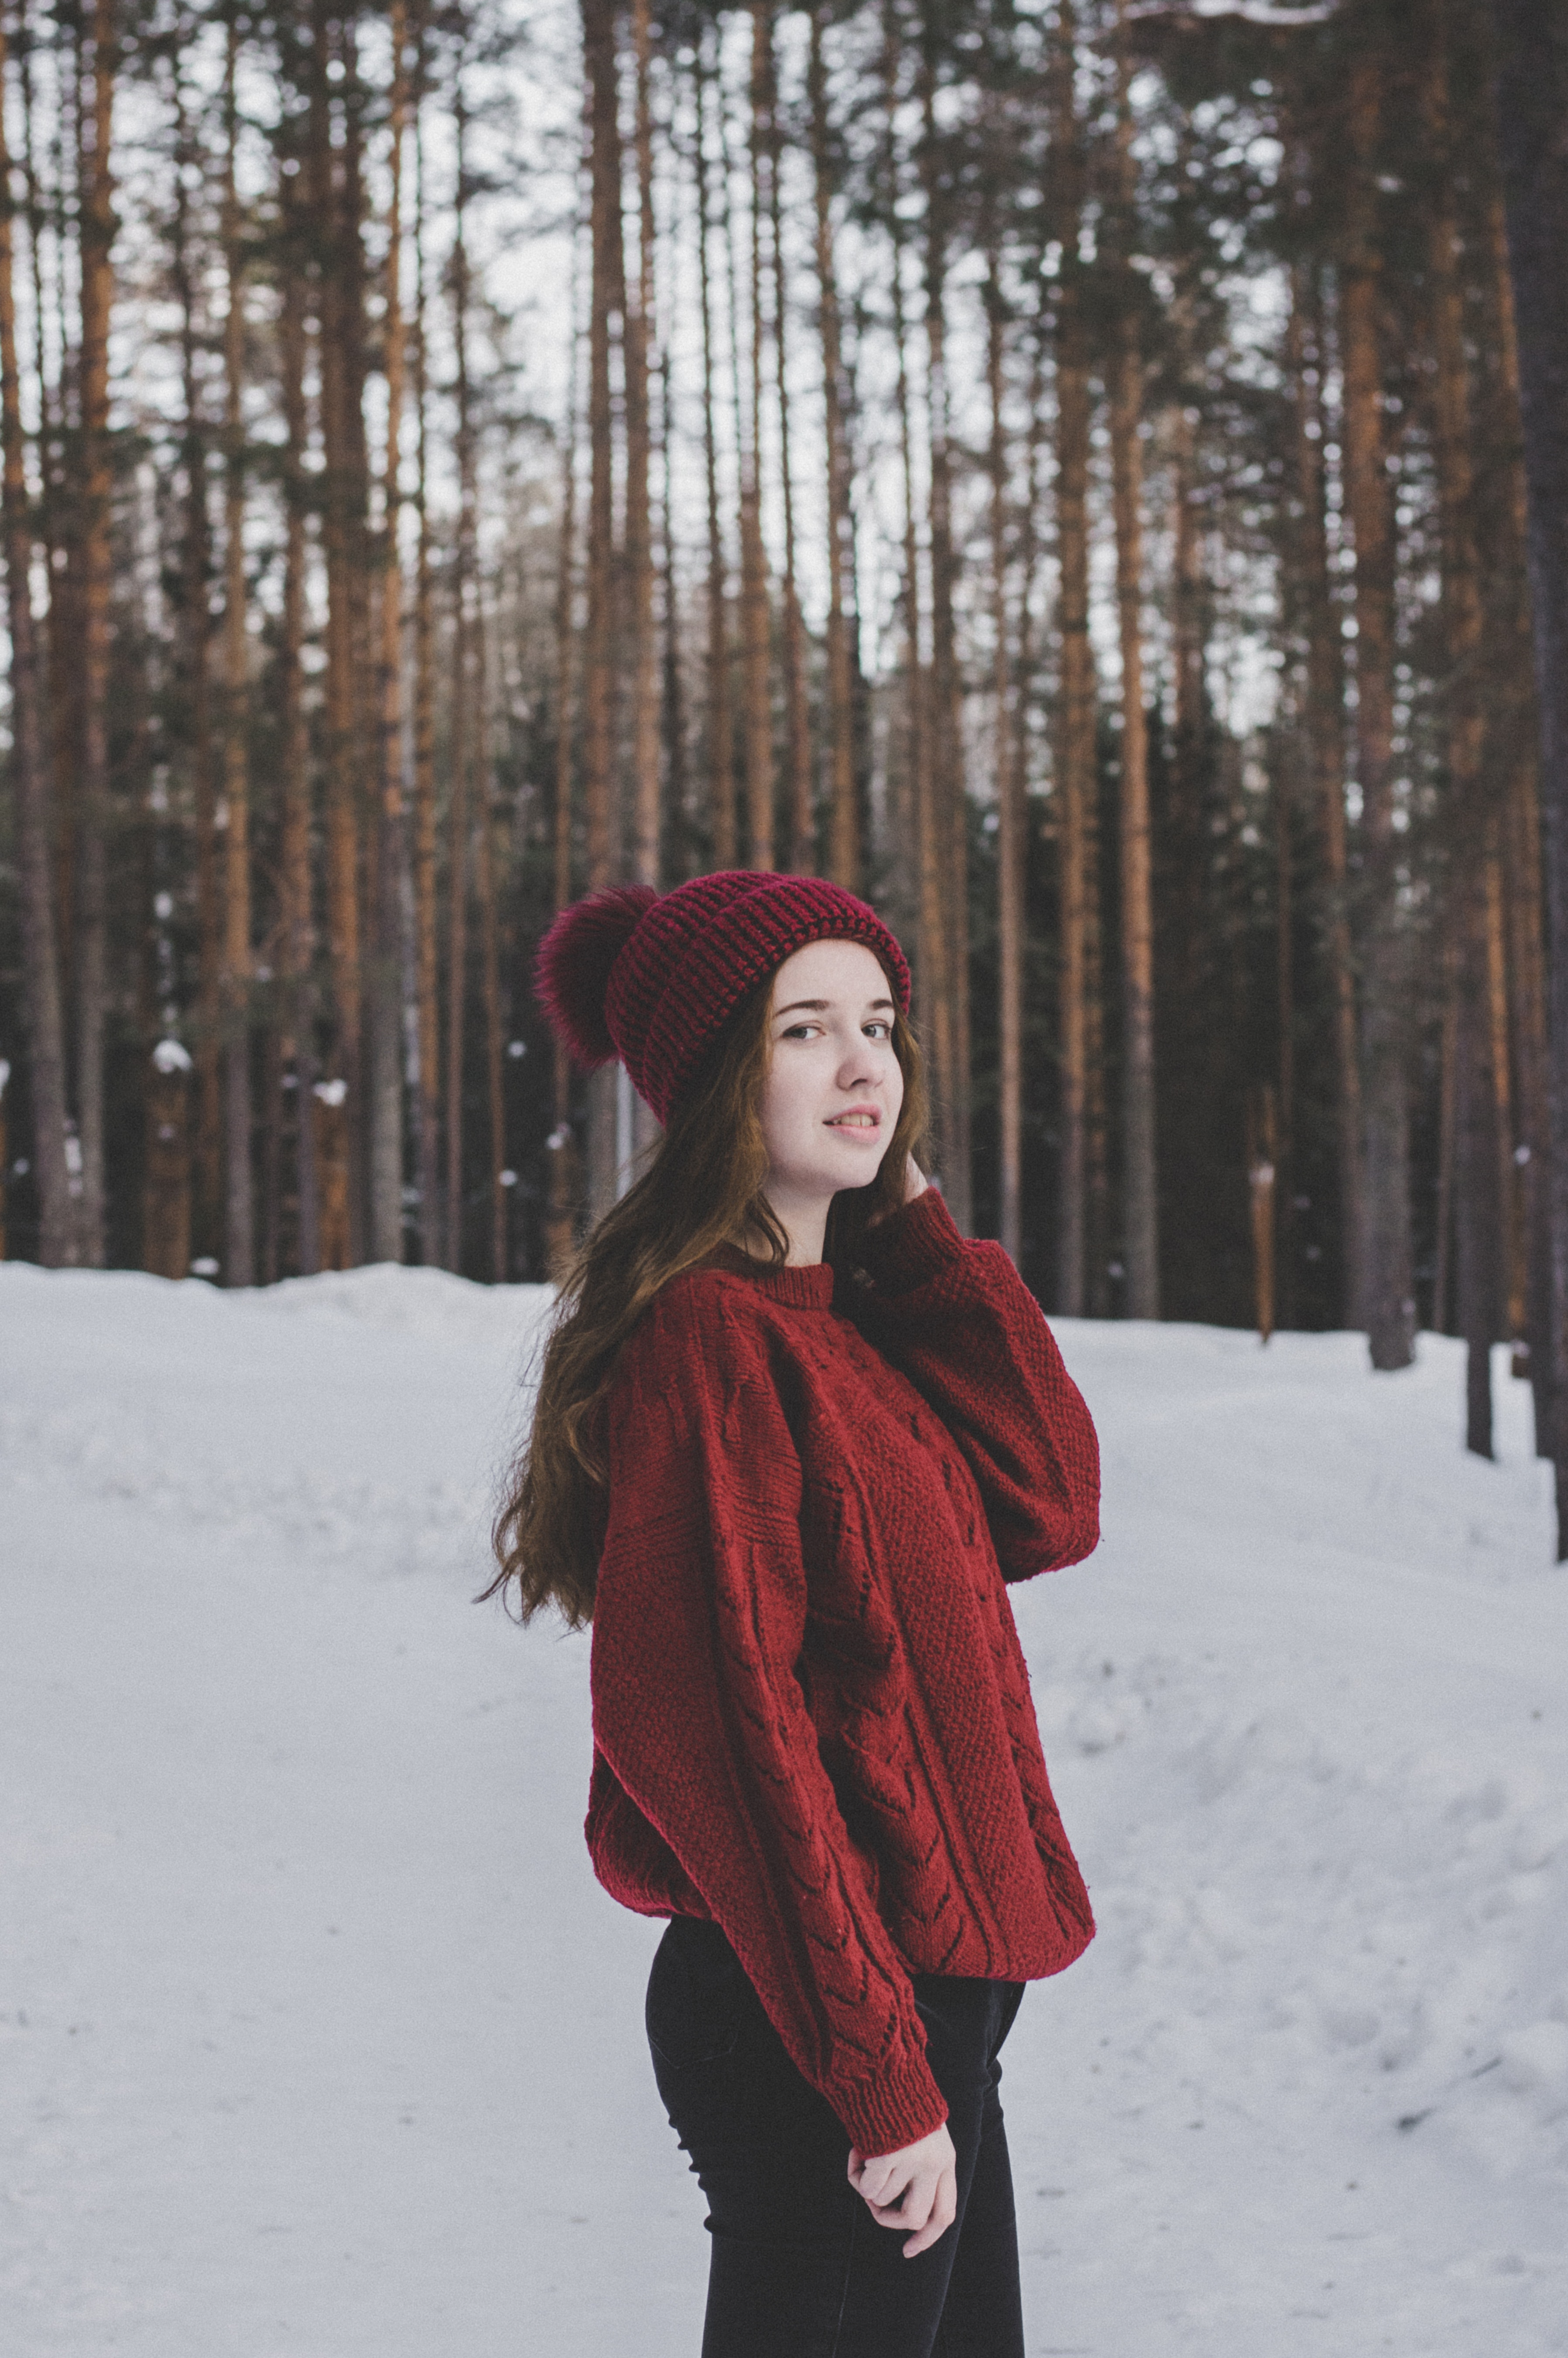 Woman wearing red sweater and red beanie under forest photo